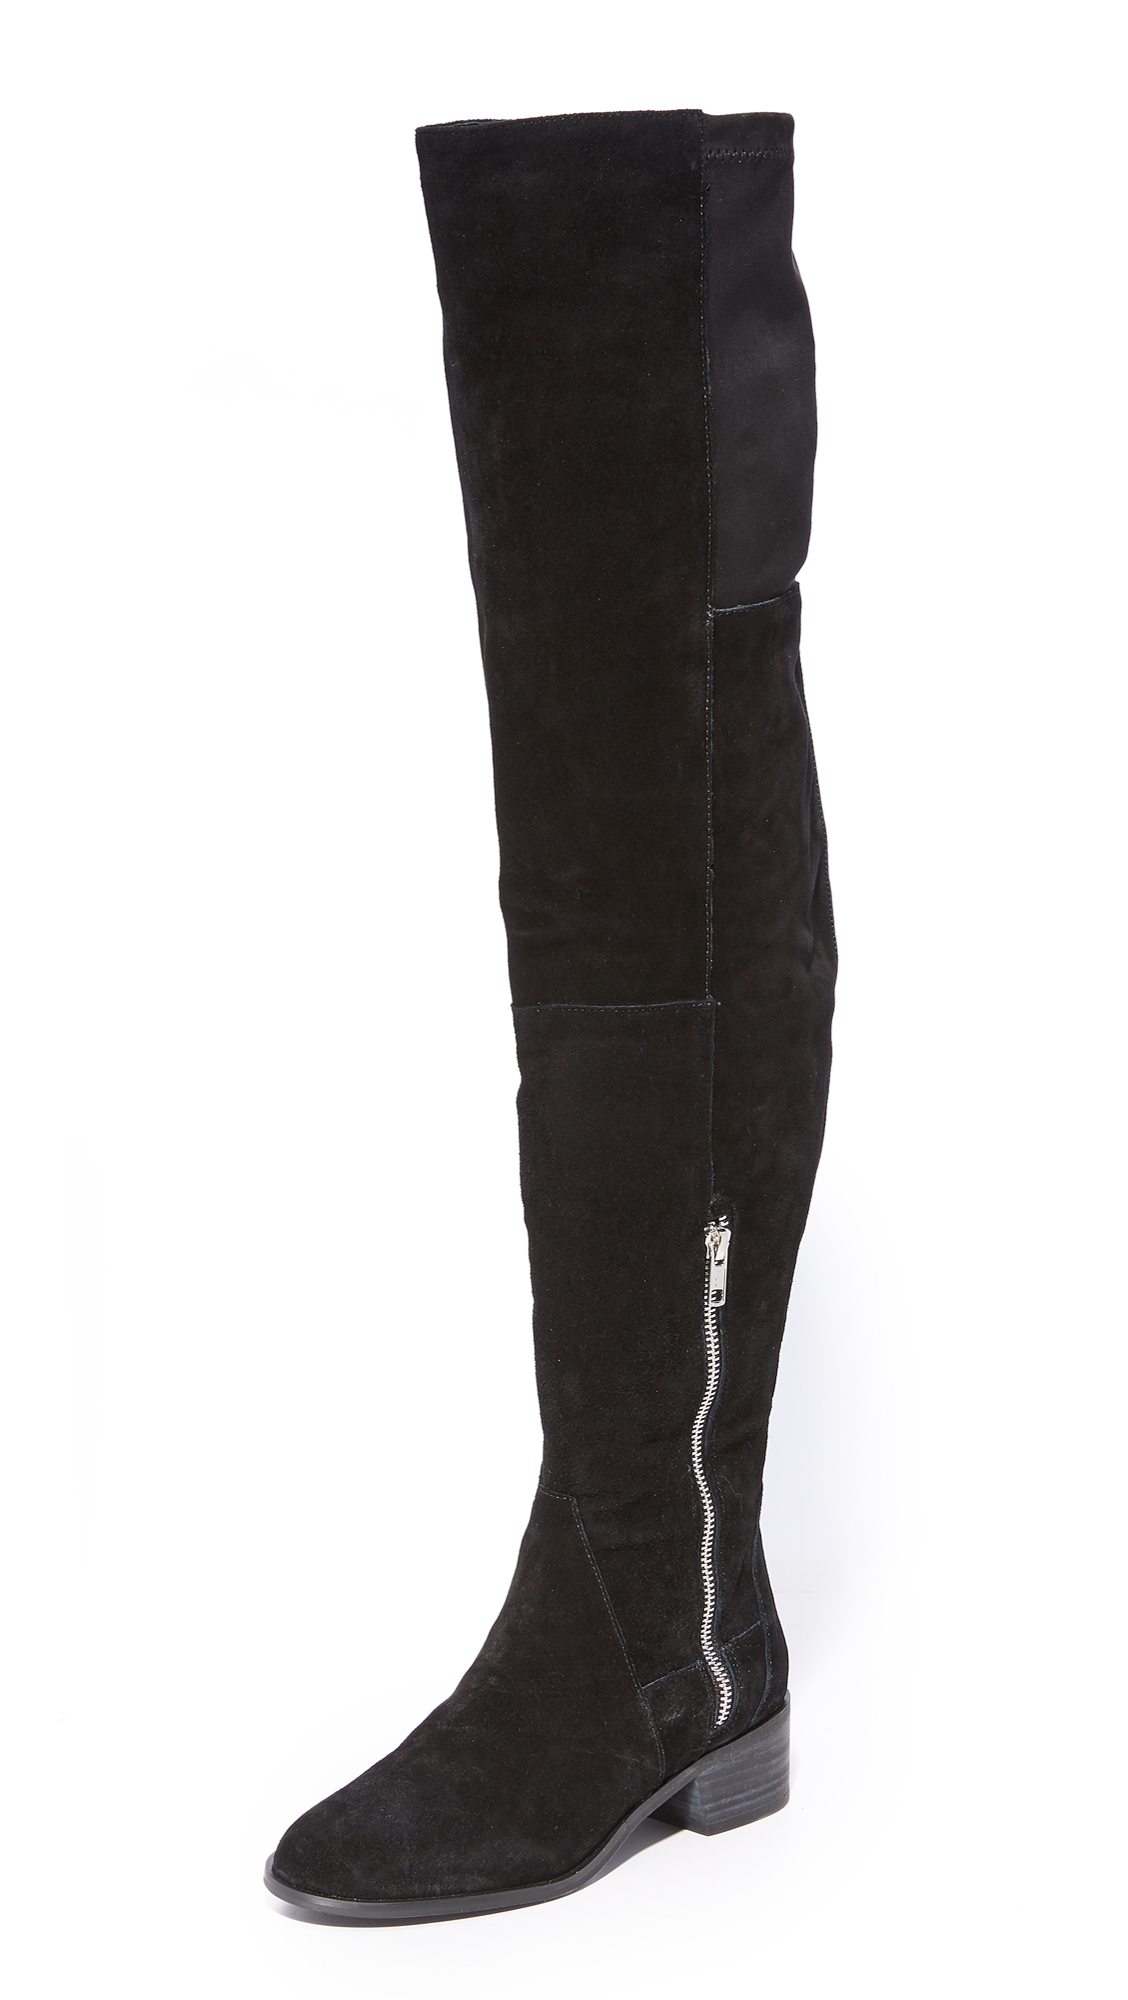 Free People Everyly Over the Knee Boots - Black